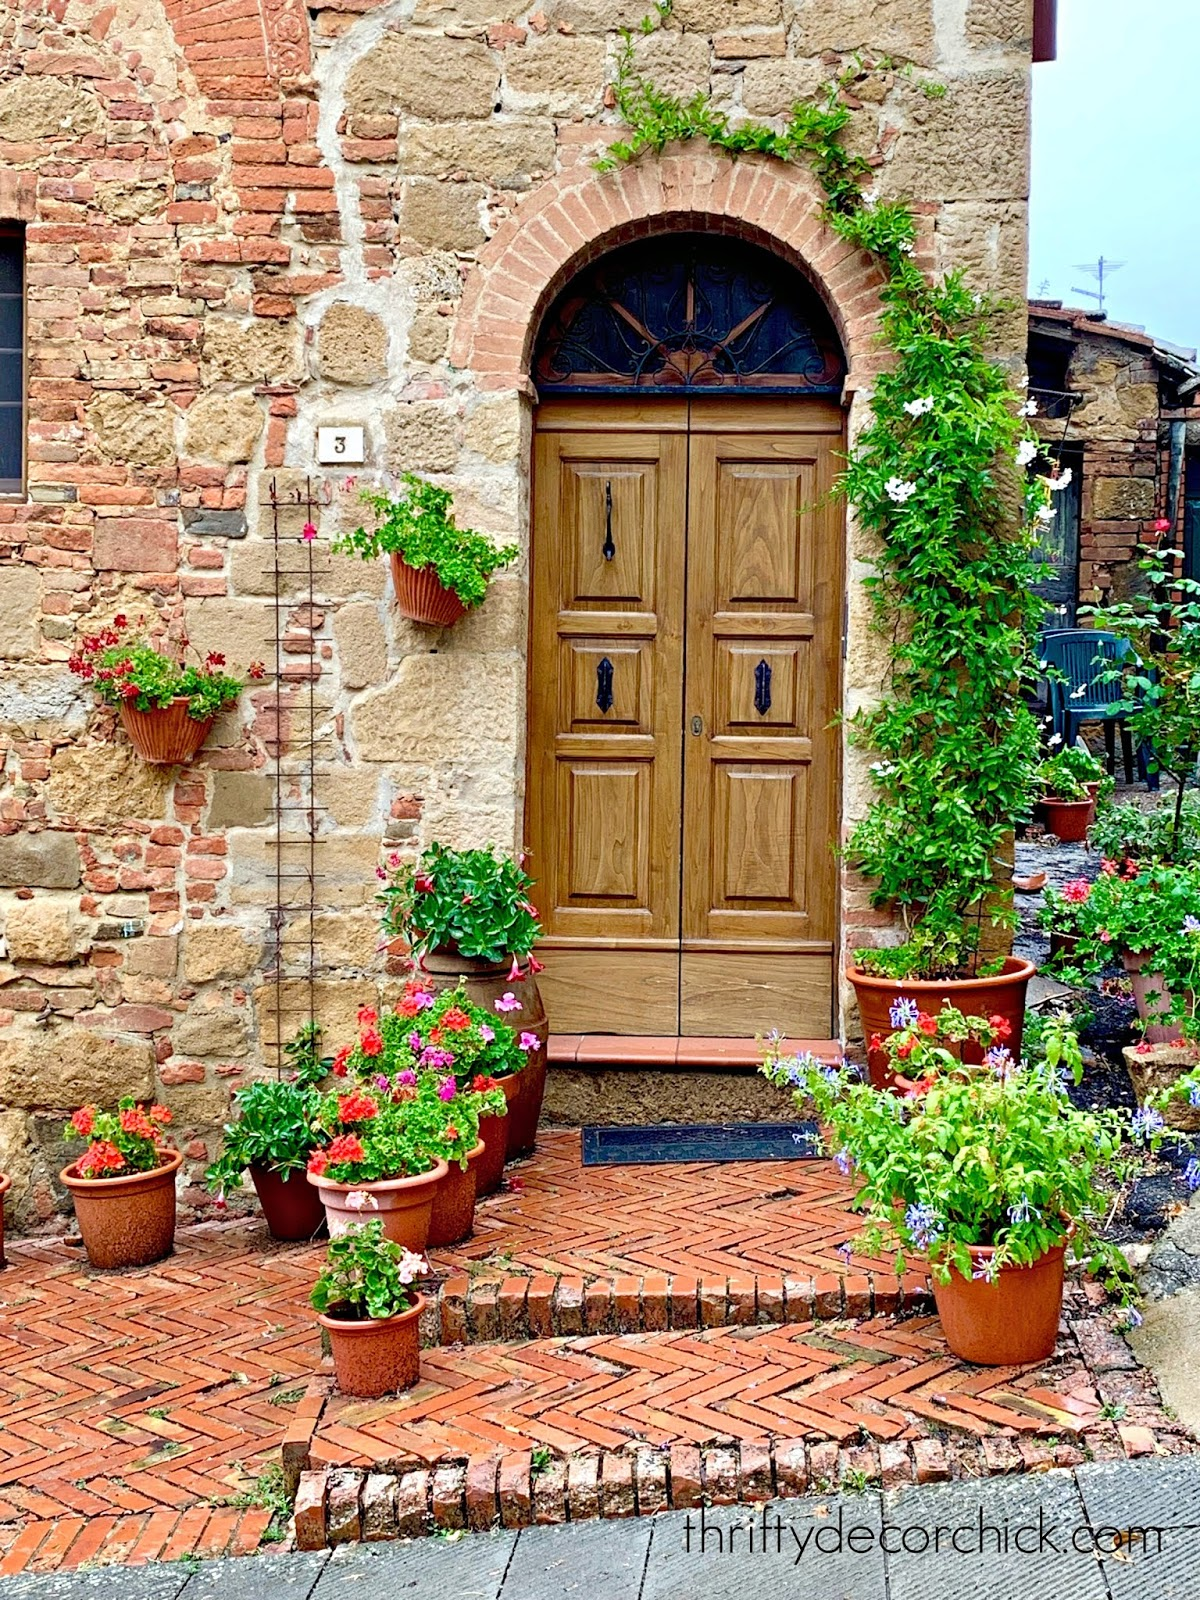 Tuscan exterior door decor with pots and flowers